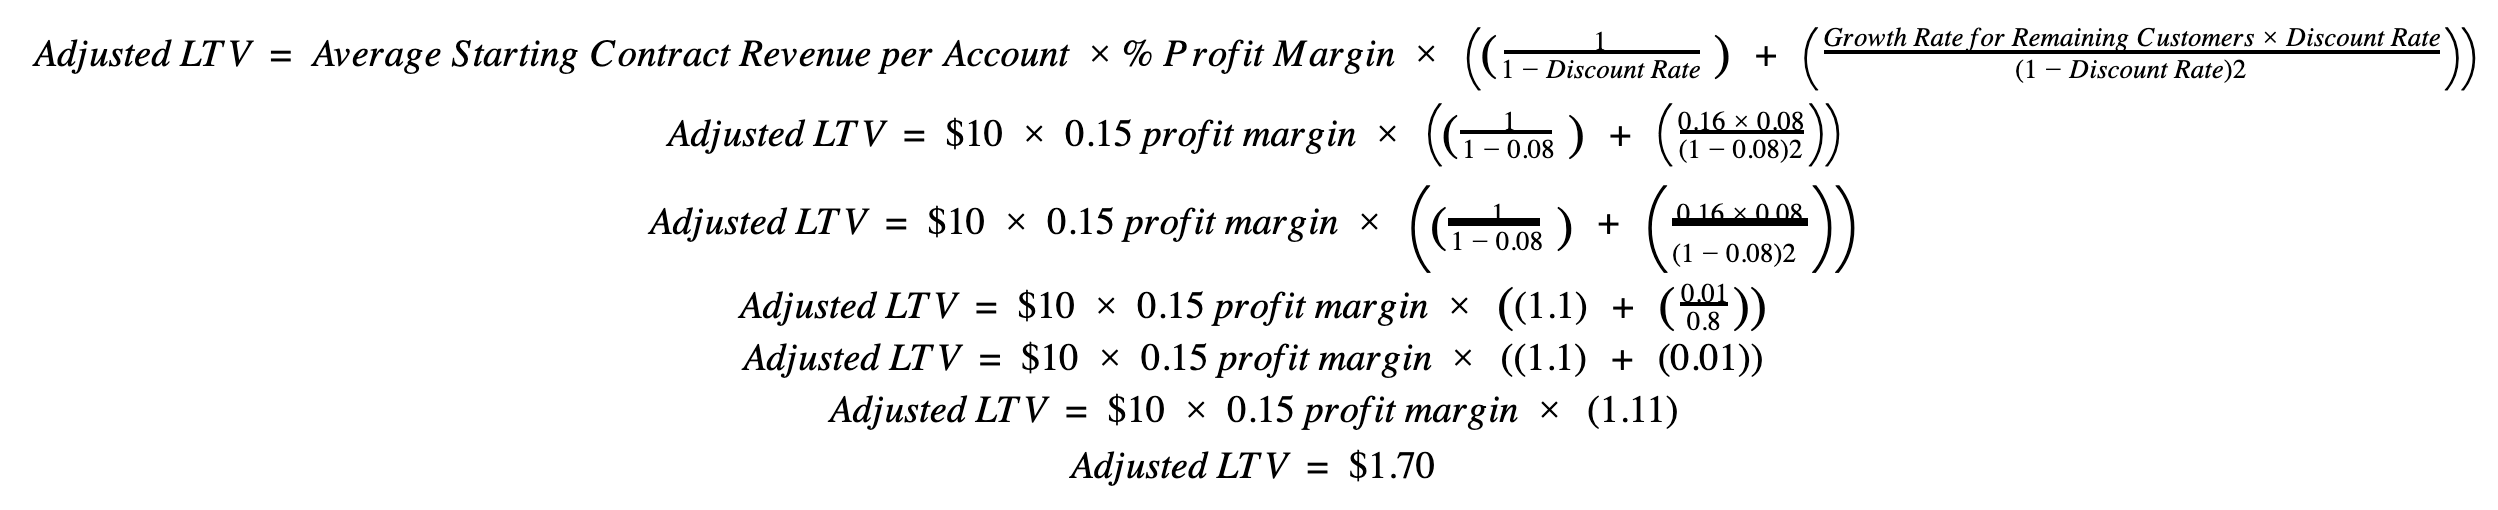 Adjusted Traditional LTV Calculation Example